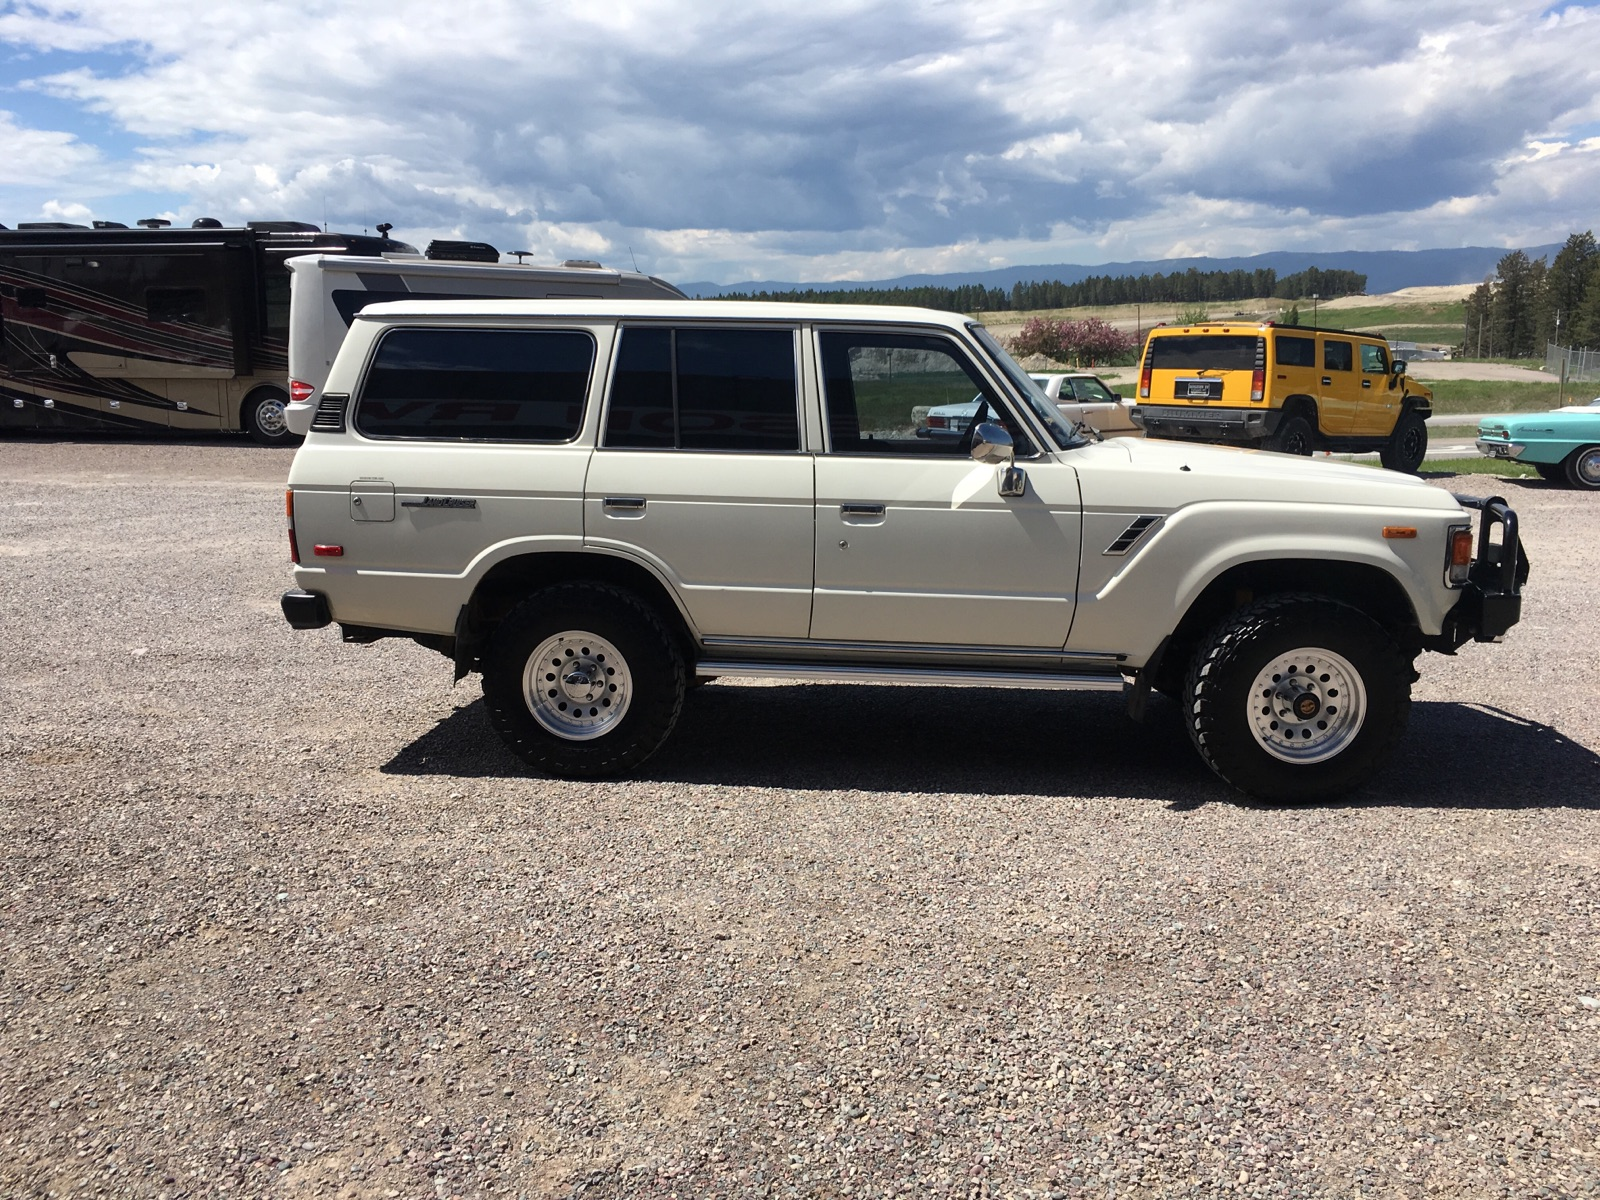 1984 Toyota LandCruiser - small lift, 4WD, new wheels and tires, ARB bumper, automatic and straight six, 120,000 original miles MINT MINT MINTSOLD